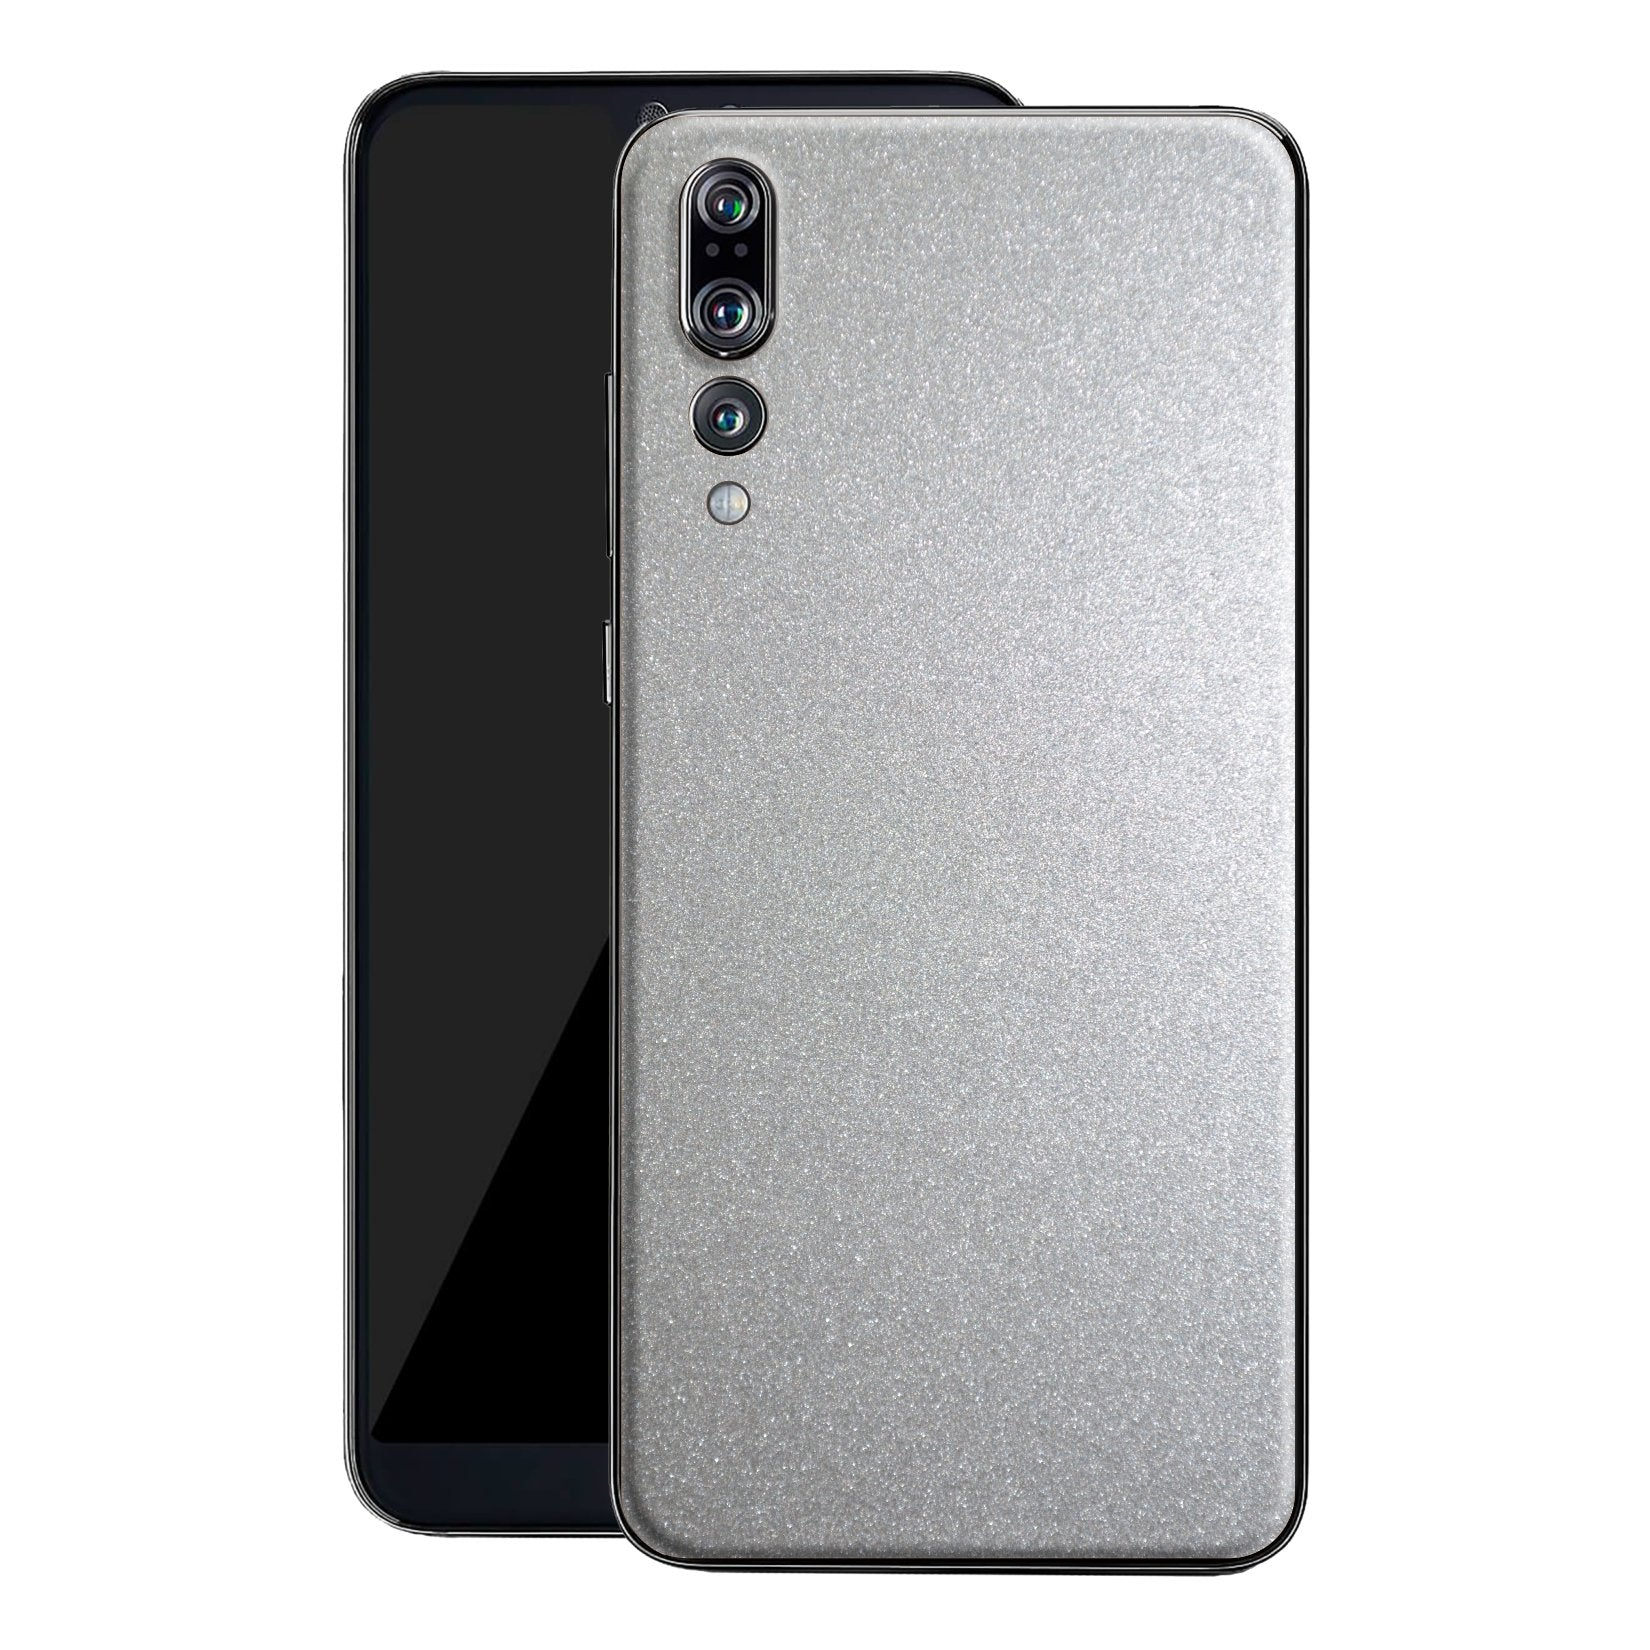 Huawei P20 PRO Glossy Silver Metallic Skin, Decal, Wrap, Protector, Cover by EasySkinz | EasySkinz.com